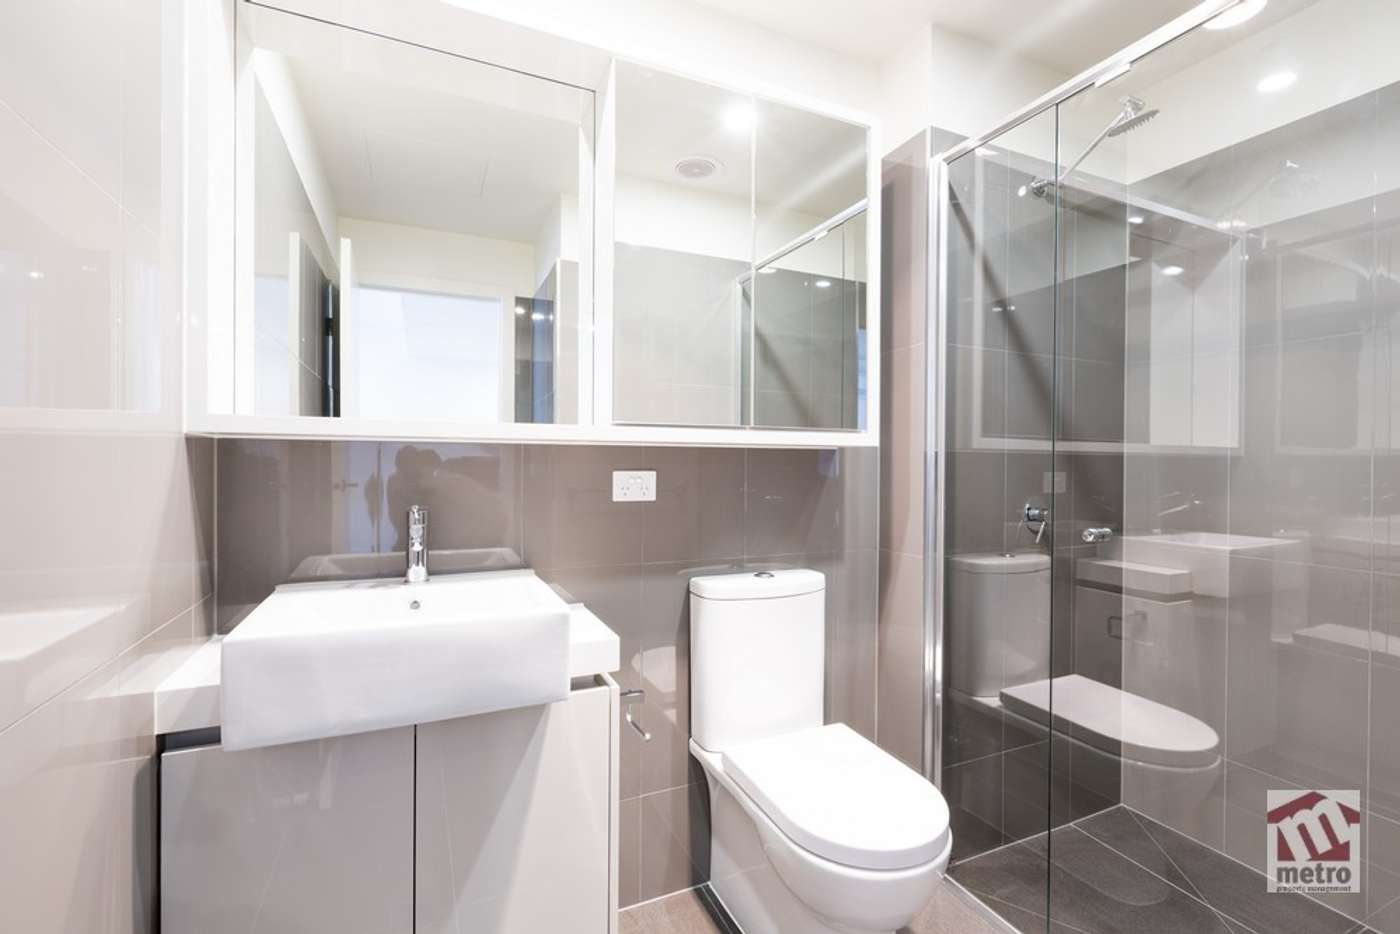 Sixth view of Homely apartment listing, 110B/23-35 Cumberland Road, Pascoe Vale VIC 3044